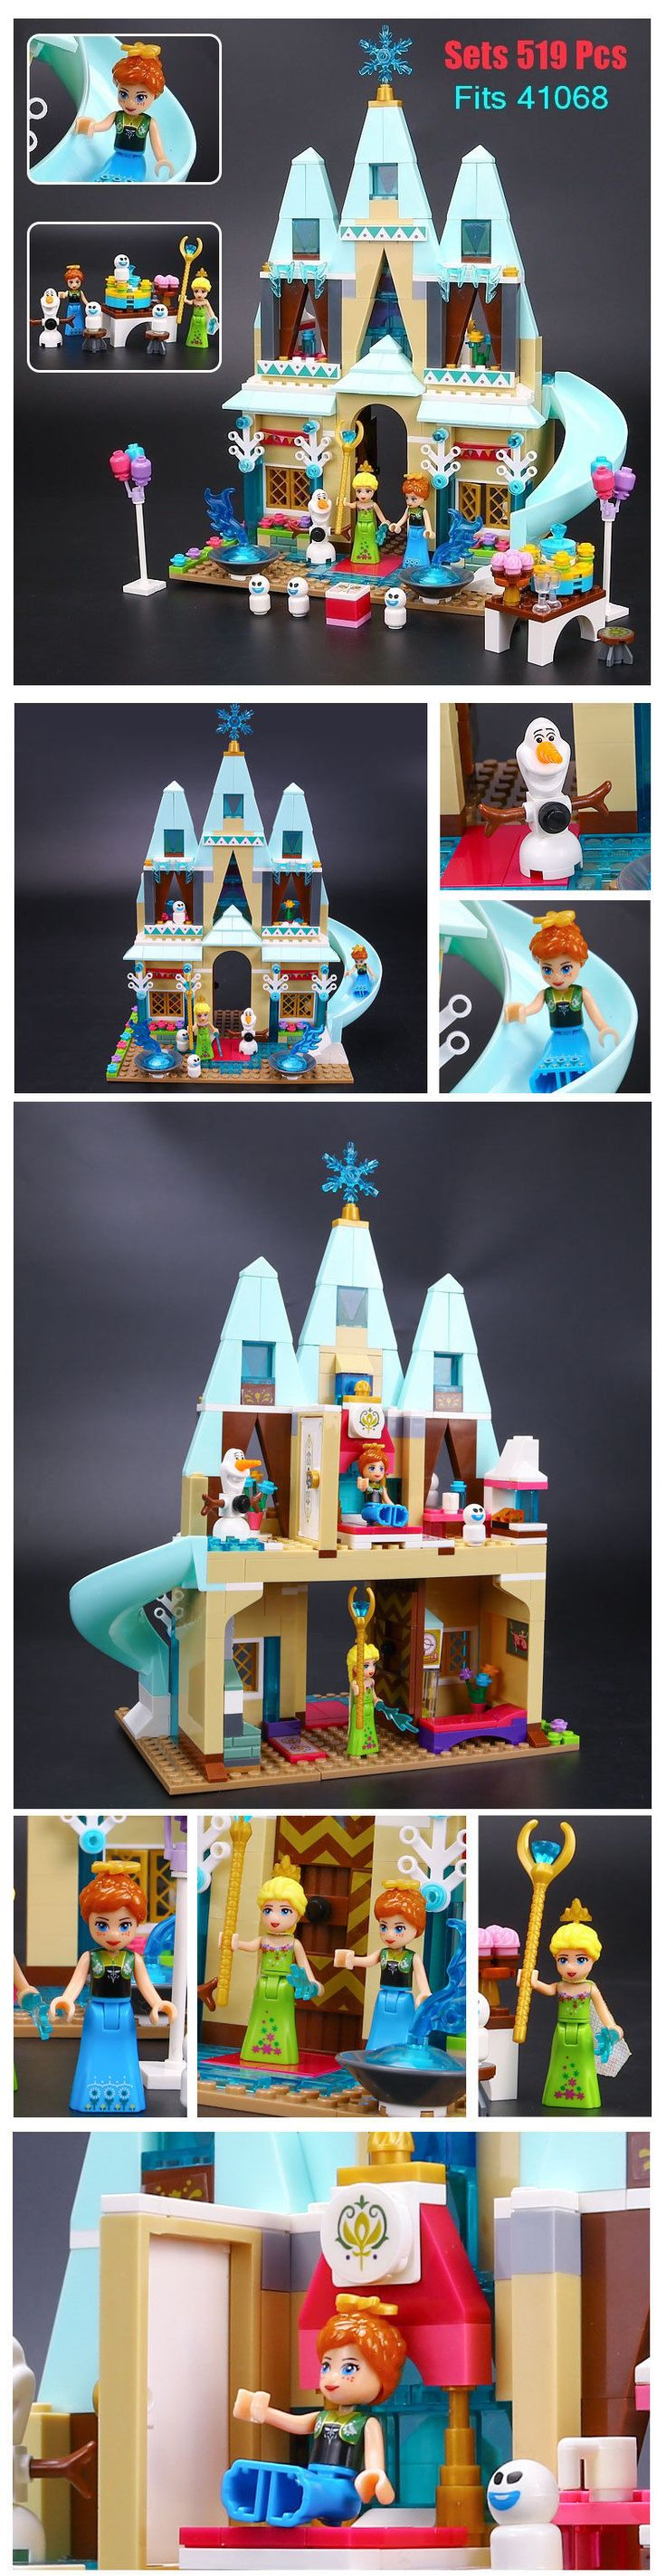 Blocks Hot Princess Frozen Arendelle Castle 519 Pcs Building Blocks Fits Lego